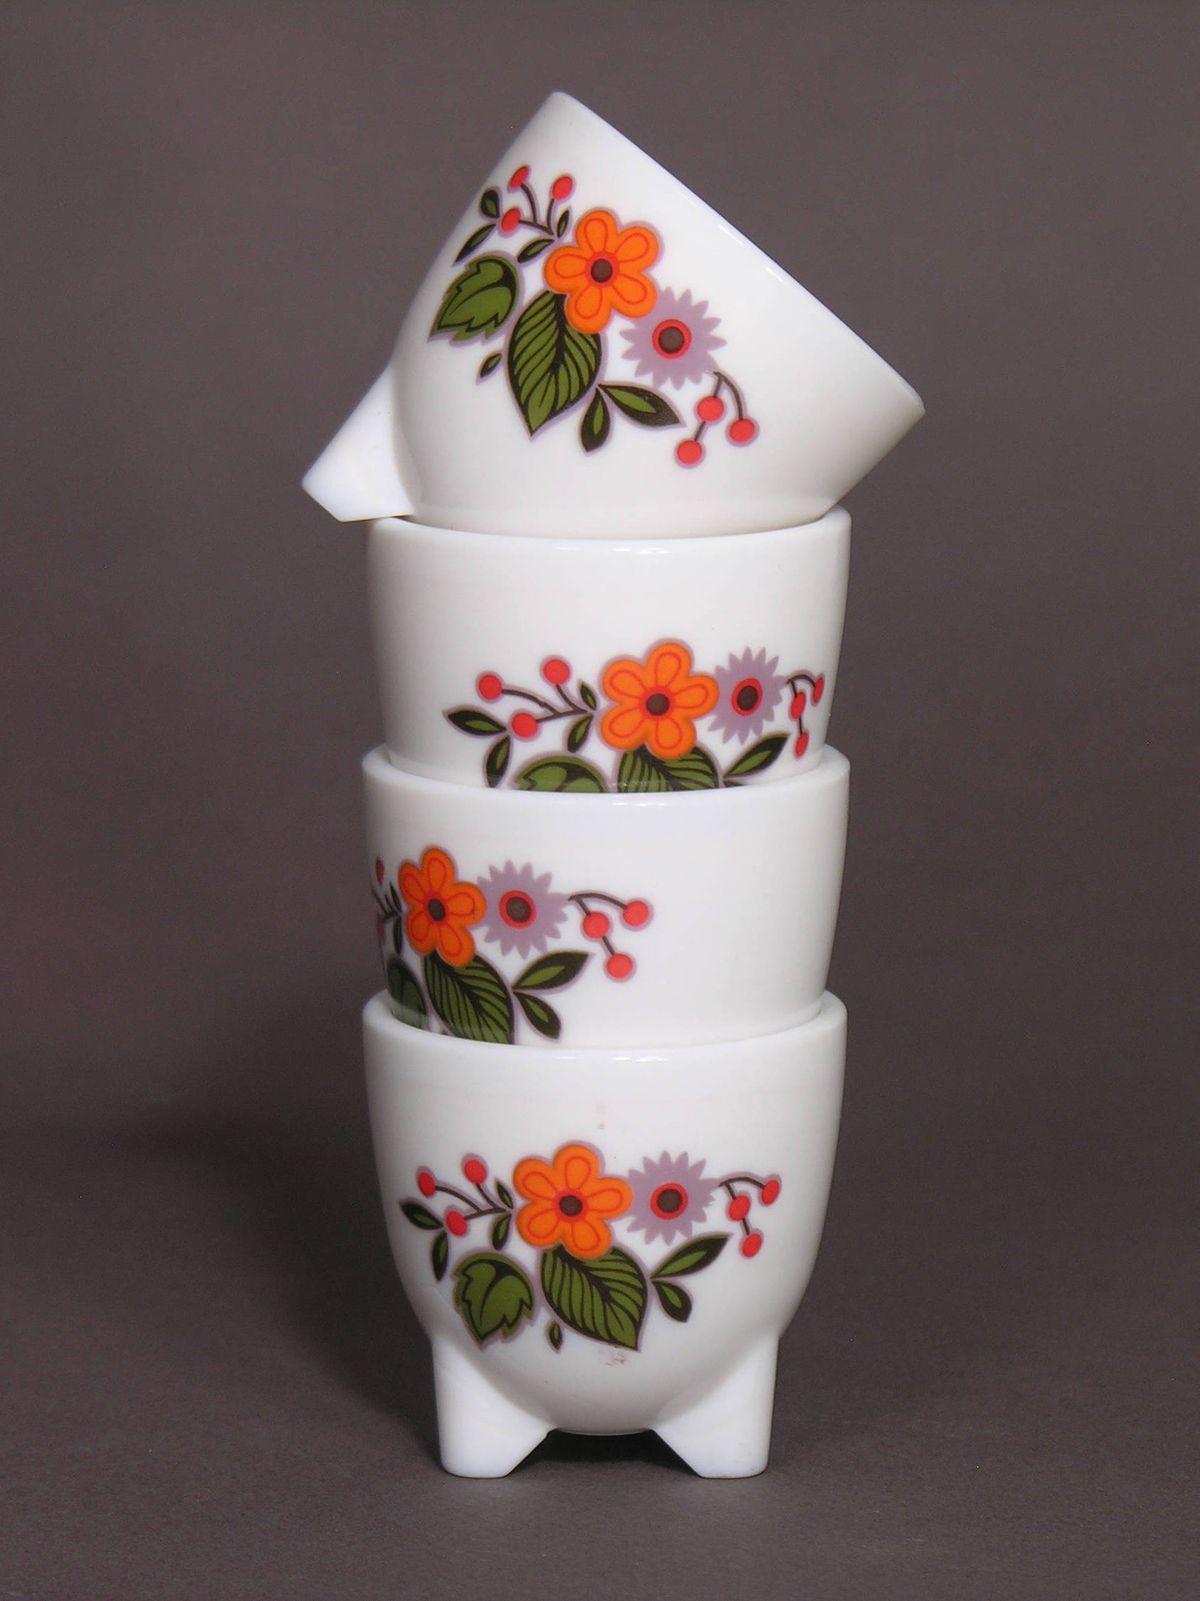 Four painted egg cups